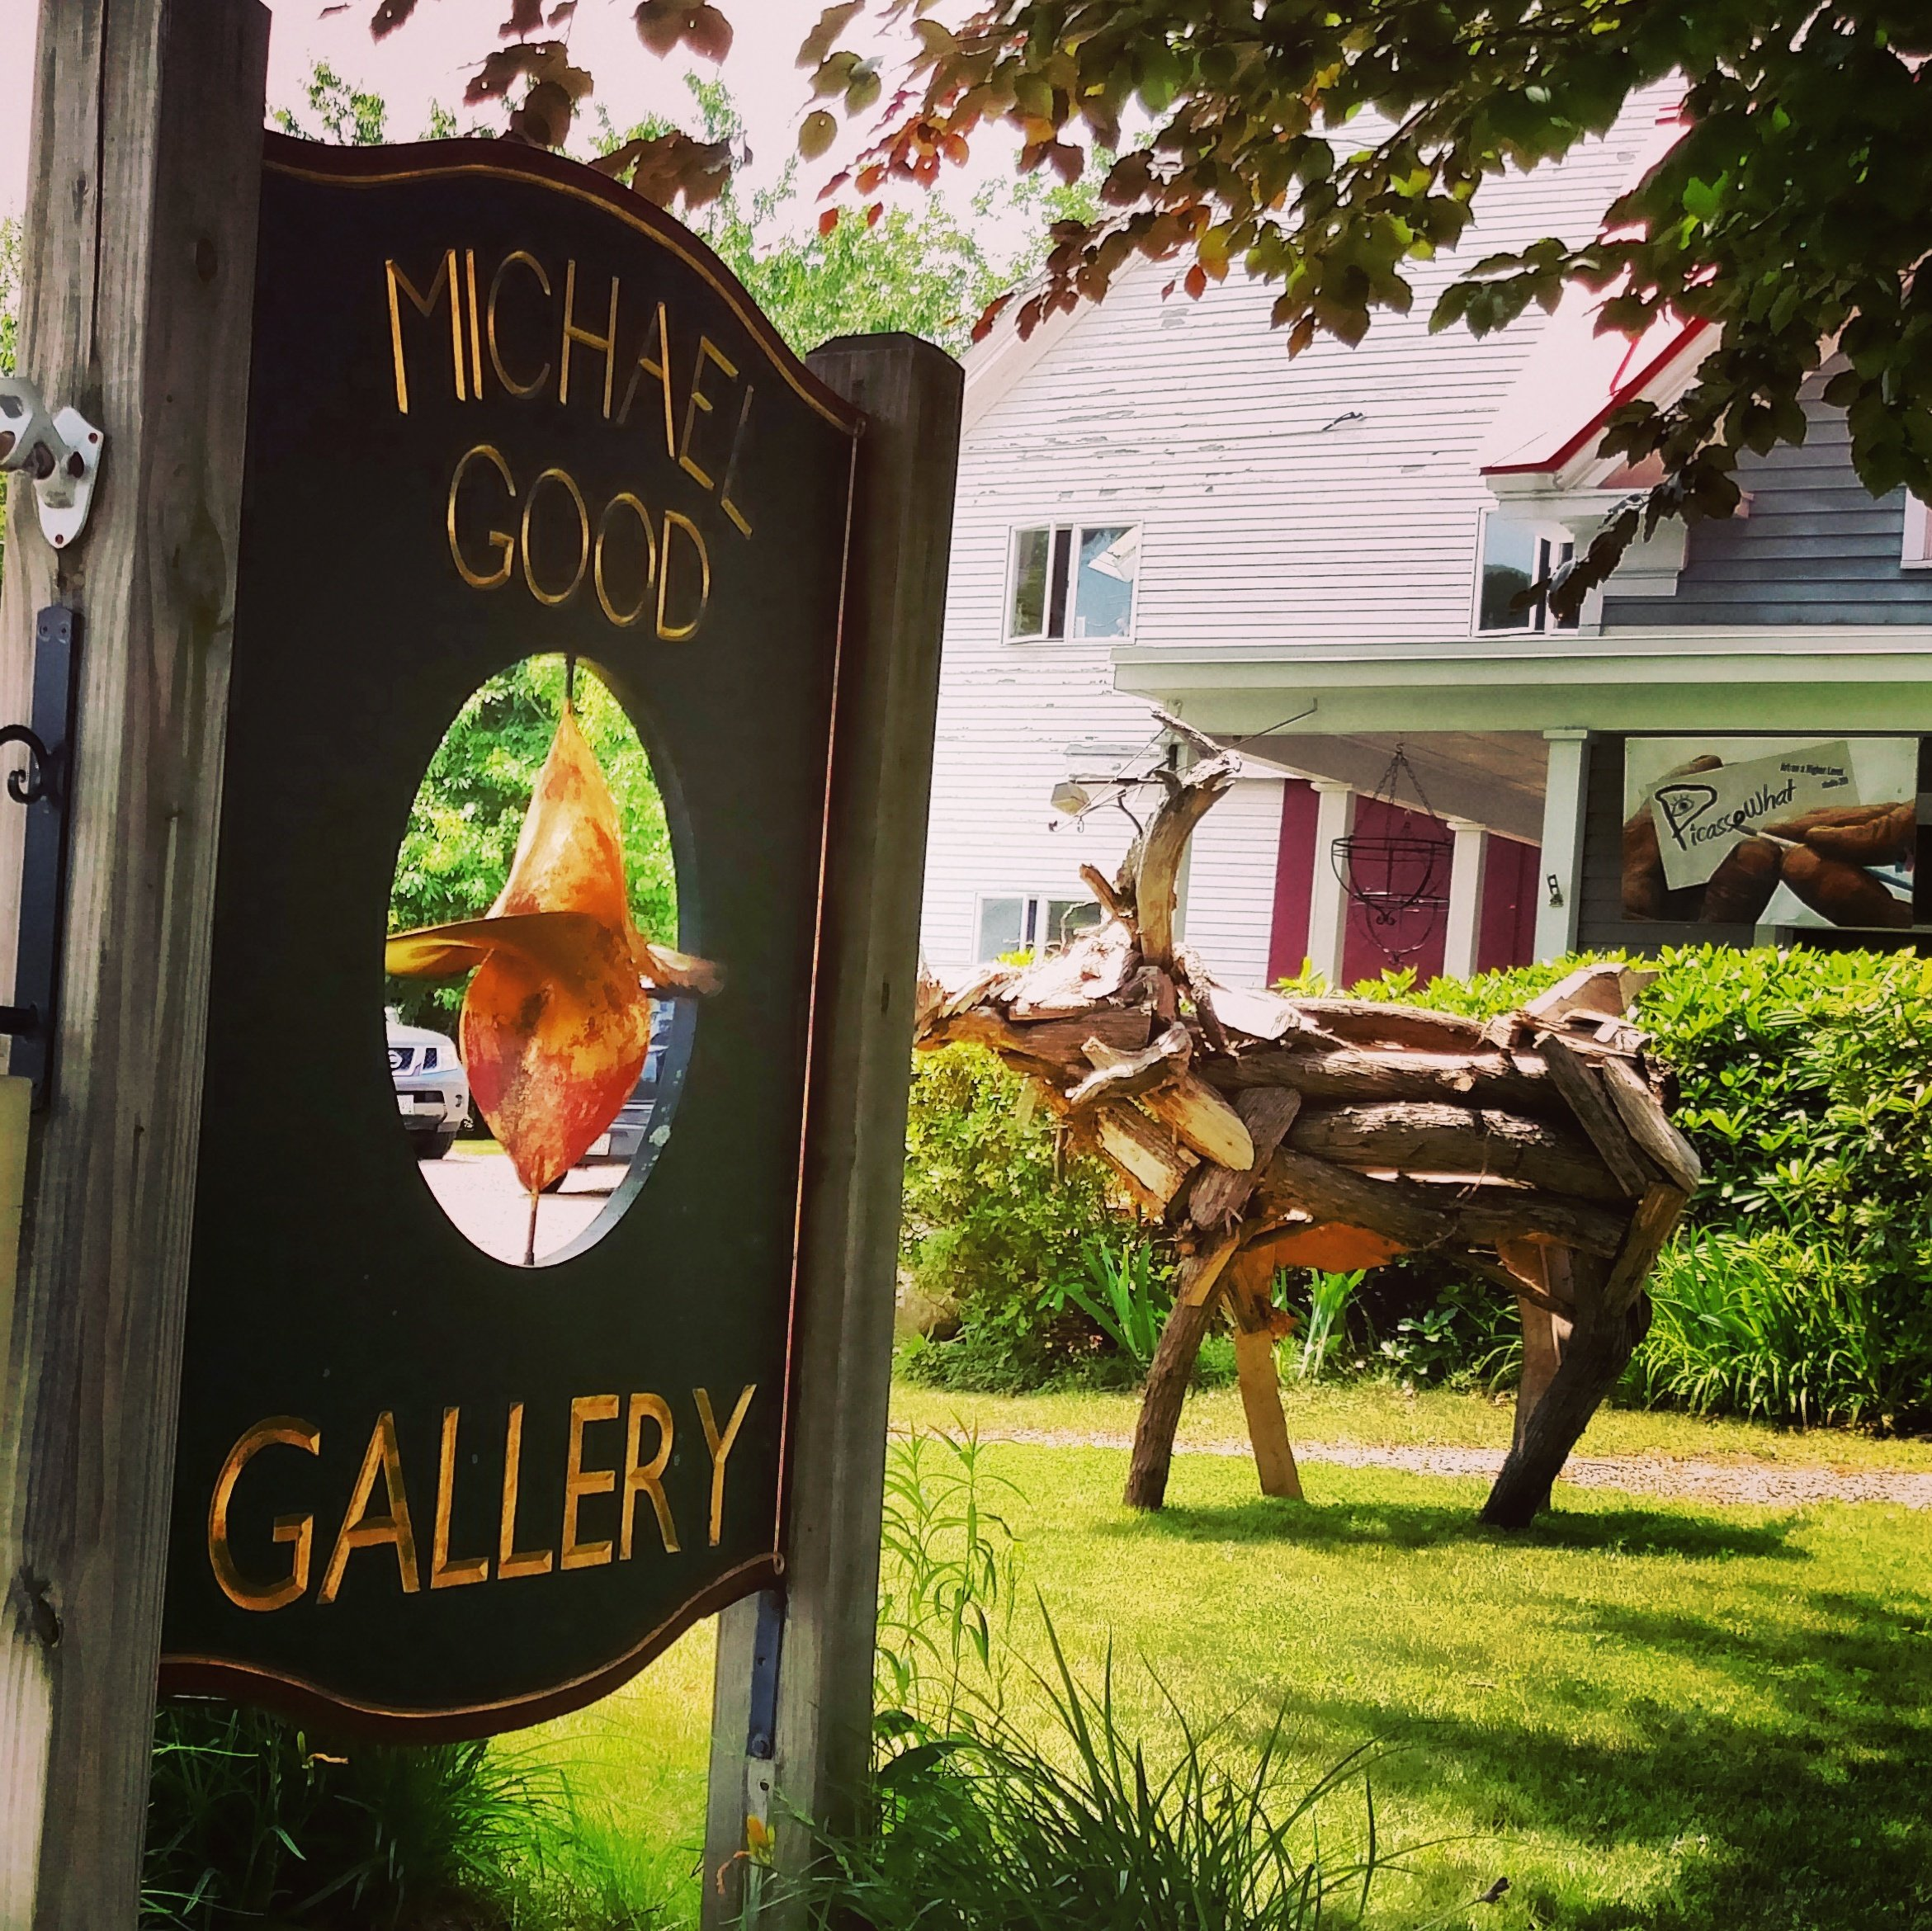 Michael Good Gallery location photograph. Outdoor front lawn sign with Richard Allen's Moose in background.